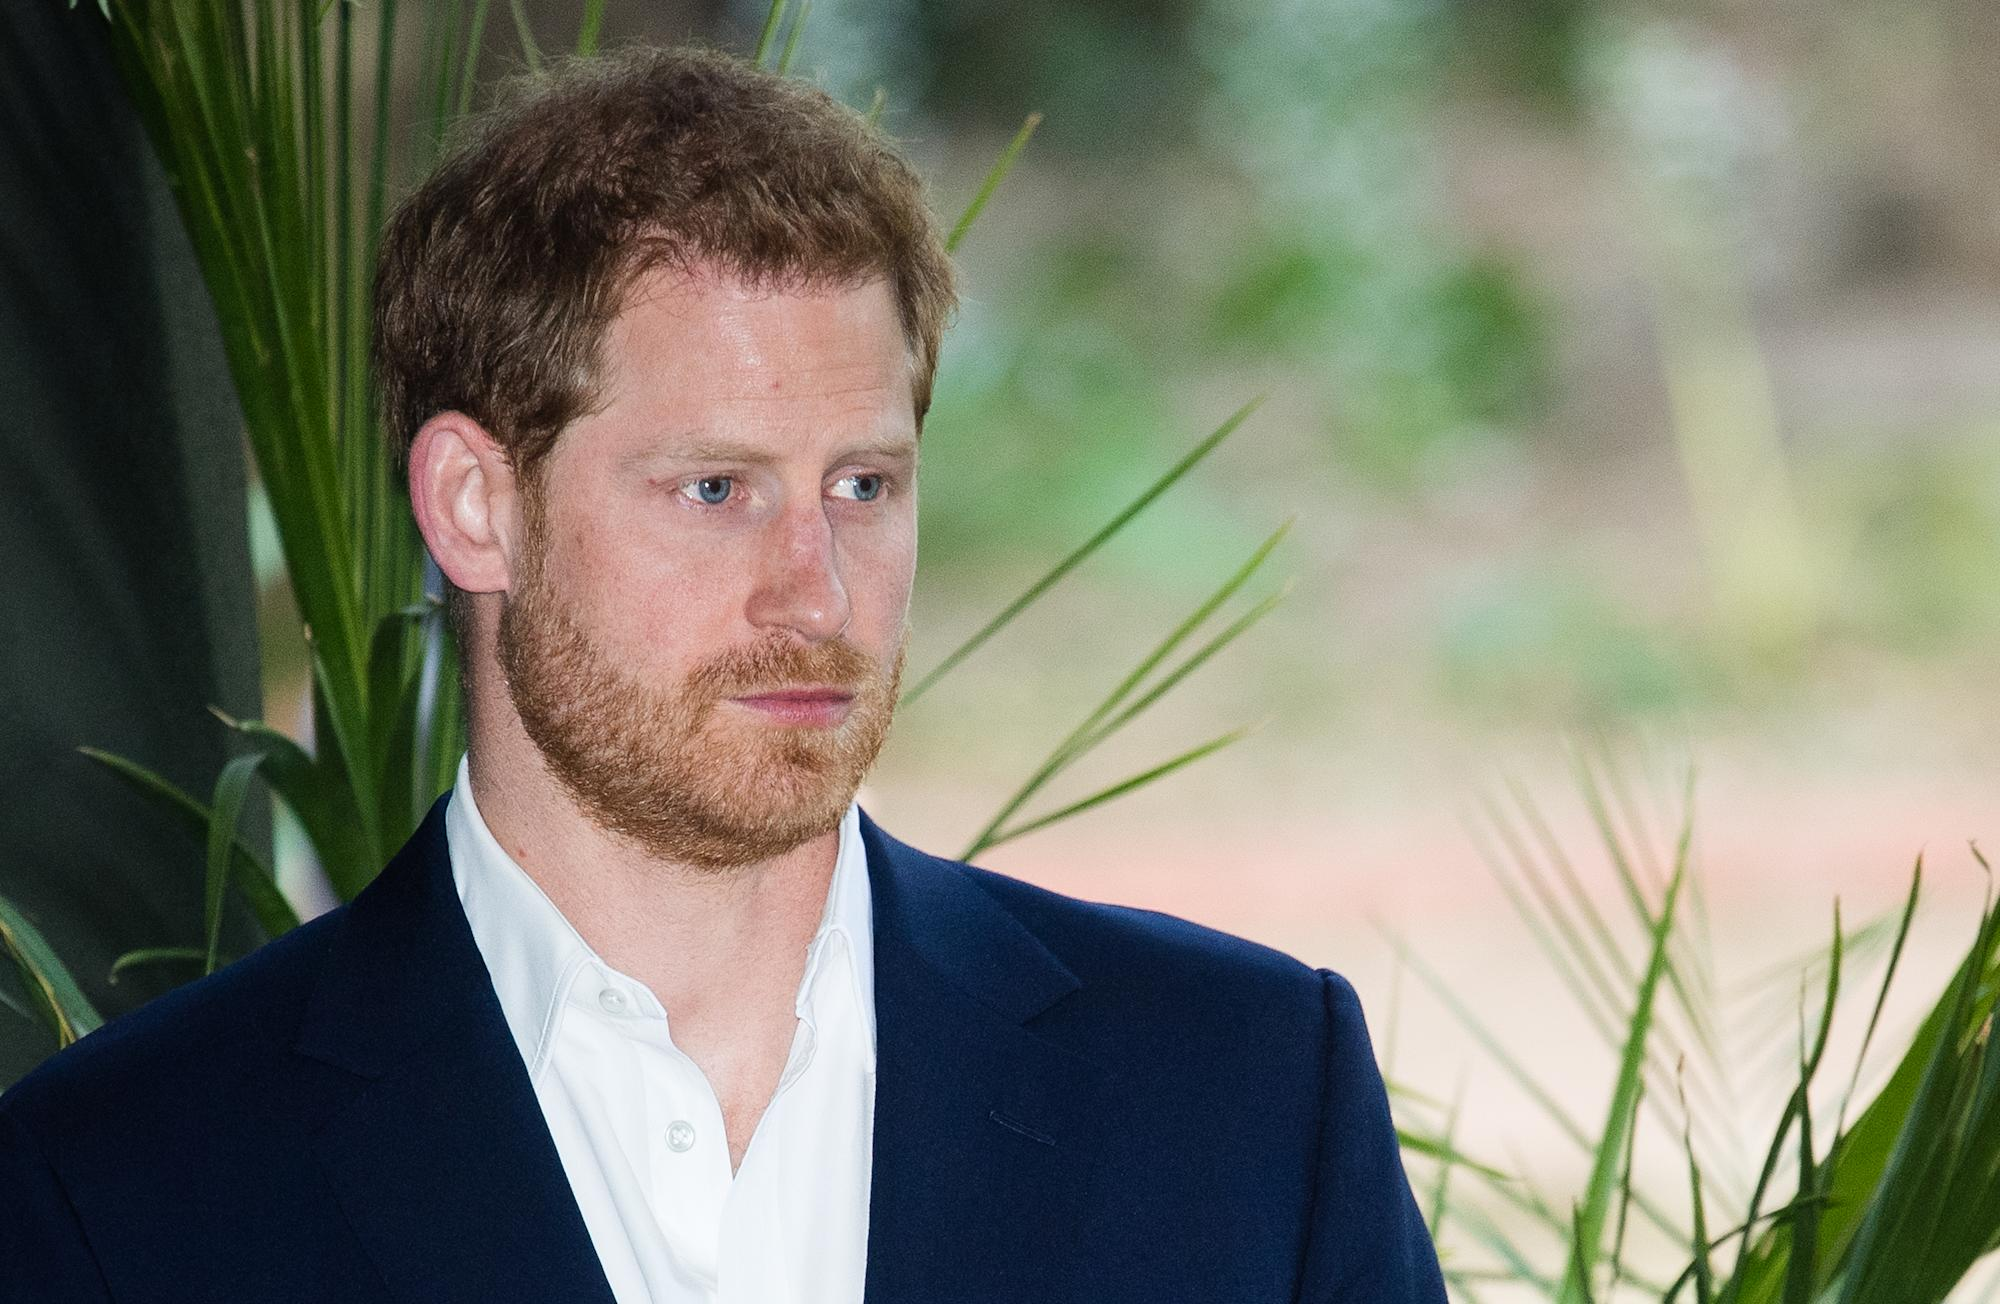 'Royal pain in the a**': Backlash intensifies after Prince Harry calls US First Amendment 'bonkers'